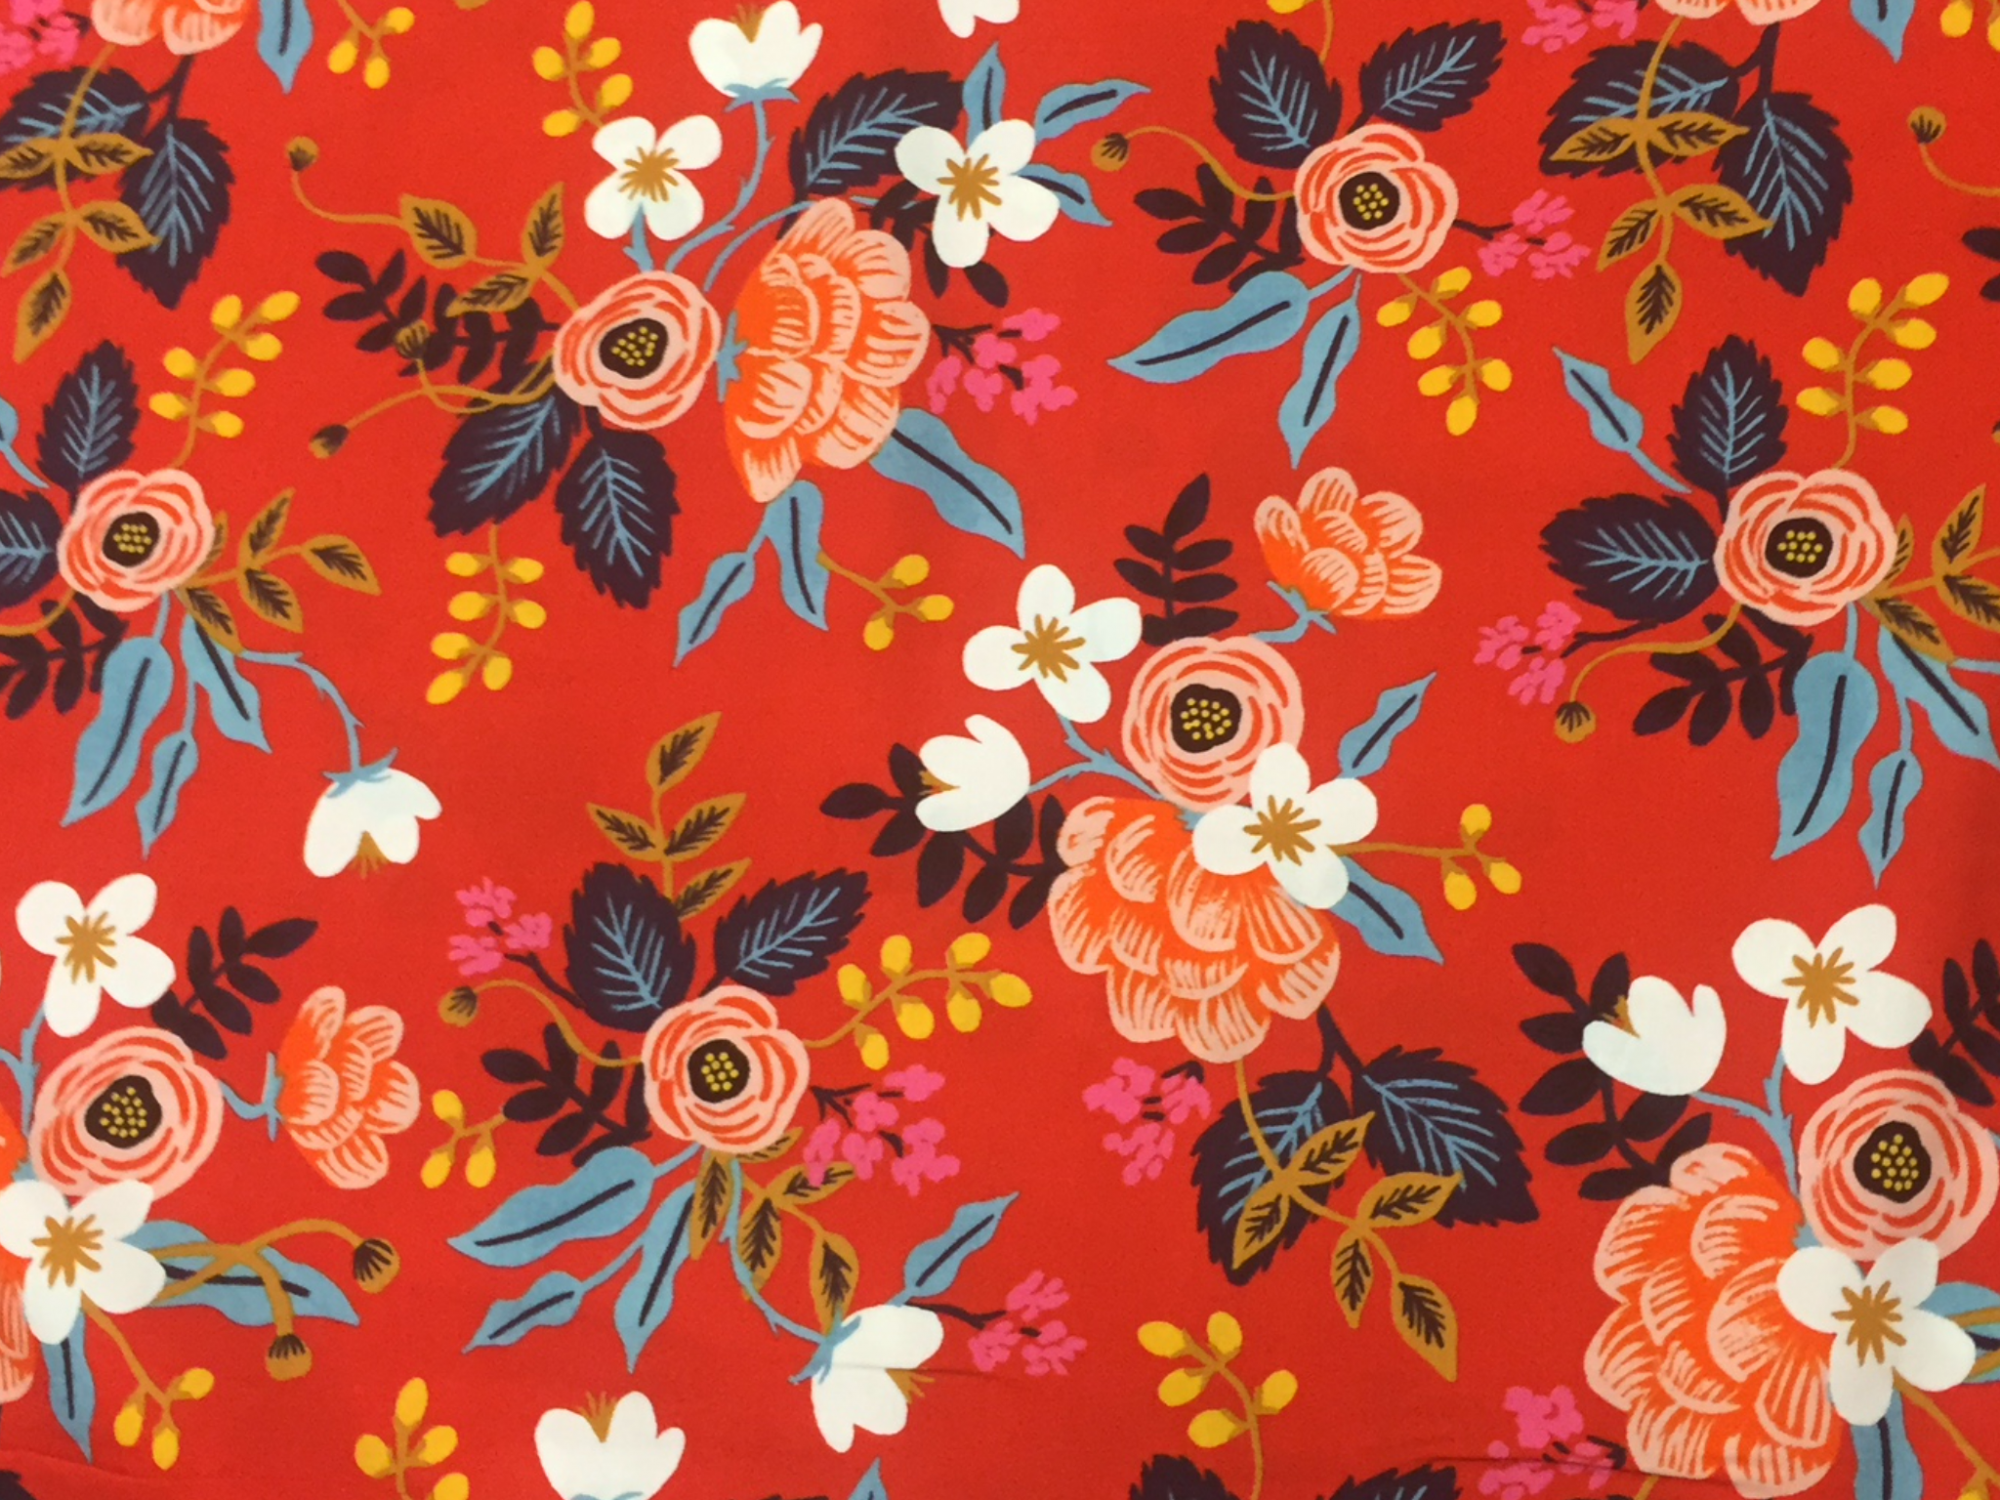 BACKORDERED Cotton + Steel Rifle Paper Company Les Fleurs Floral Red Rayon Fabric